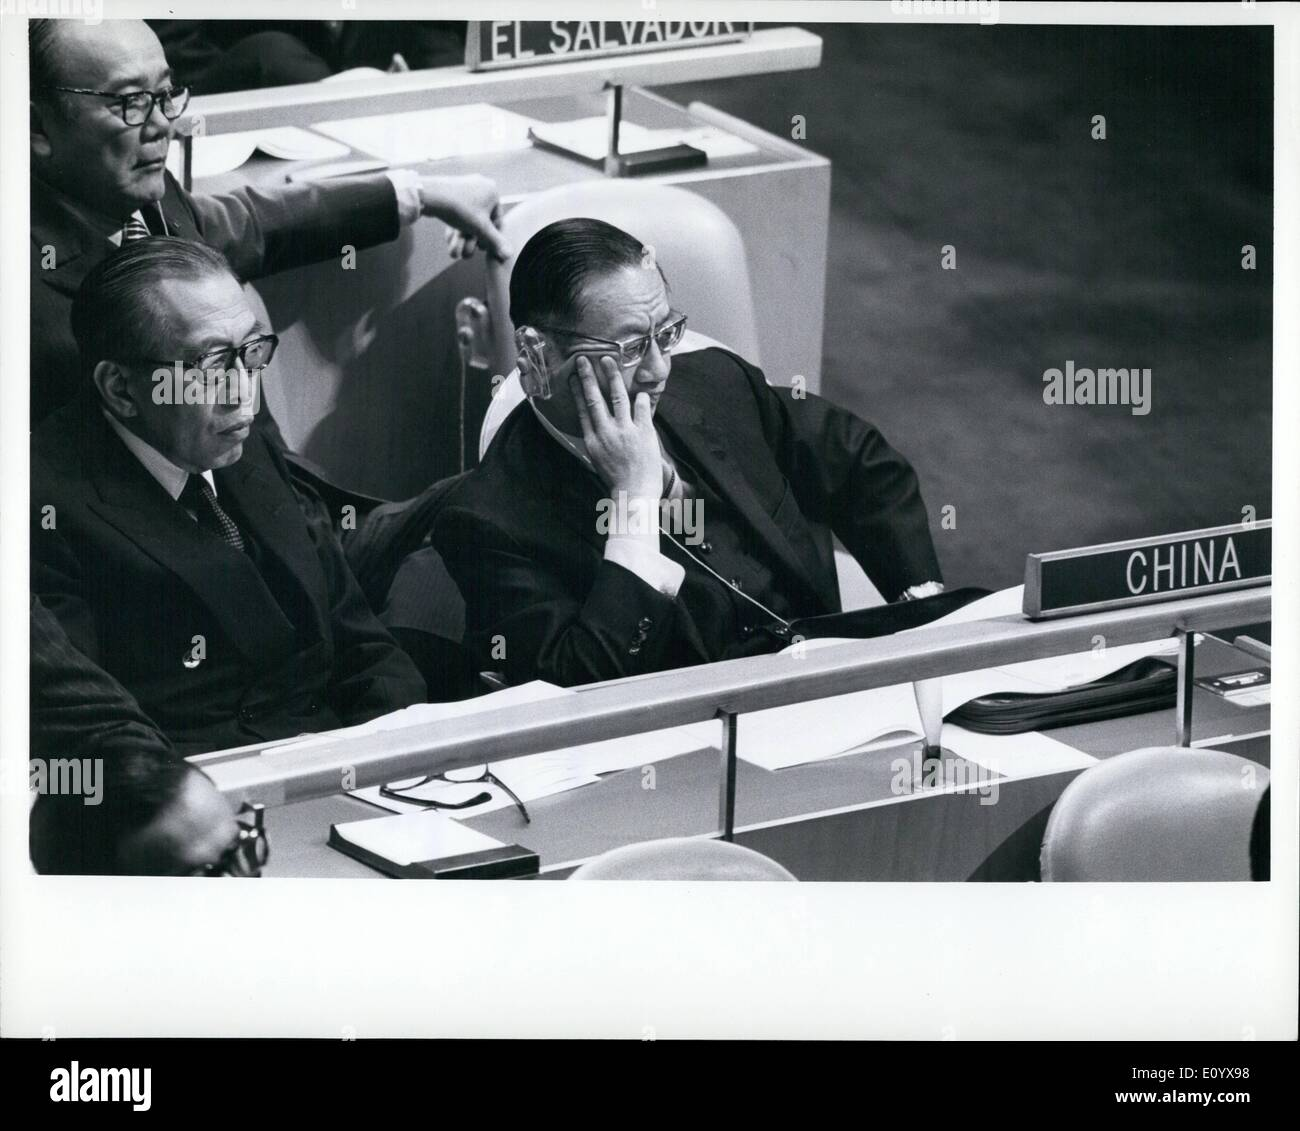 Sep. 09, 1971 - General Assembly Decides To Include Two Items In Agenda Relating To China: The General Assembly decided this morning to include two items relating to China in the agenda of the twenty-sixth session as it began consideration of the General Committee's report on the organization and the agenda of the session. Seen here is the delegation of China headed by Chow Shu-Kai (right), Minister for Foreign Affairs. Seated next to him is LIU Chieh, Permanent Representative to the United Nations. - Stock Image